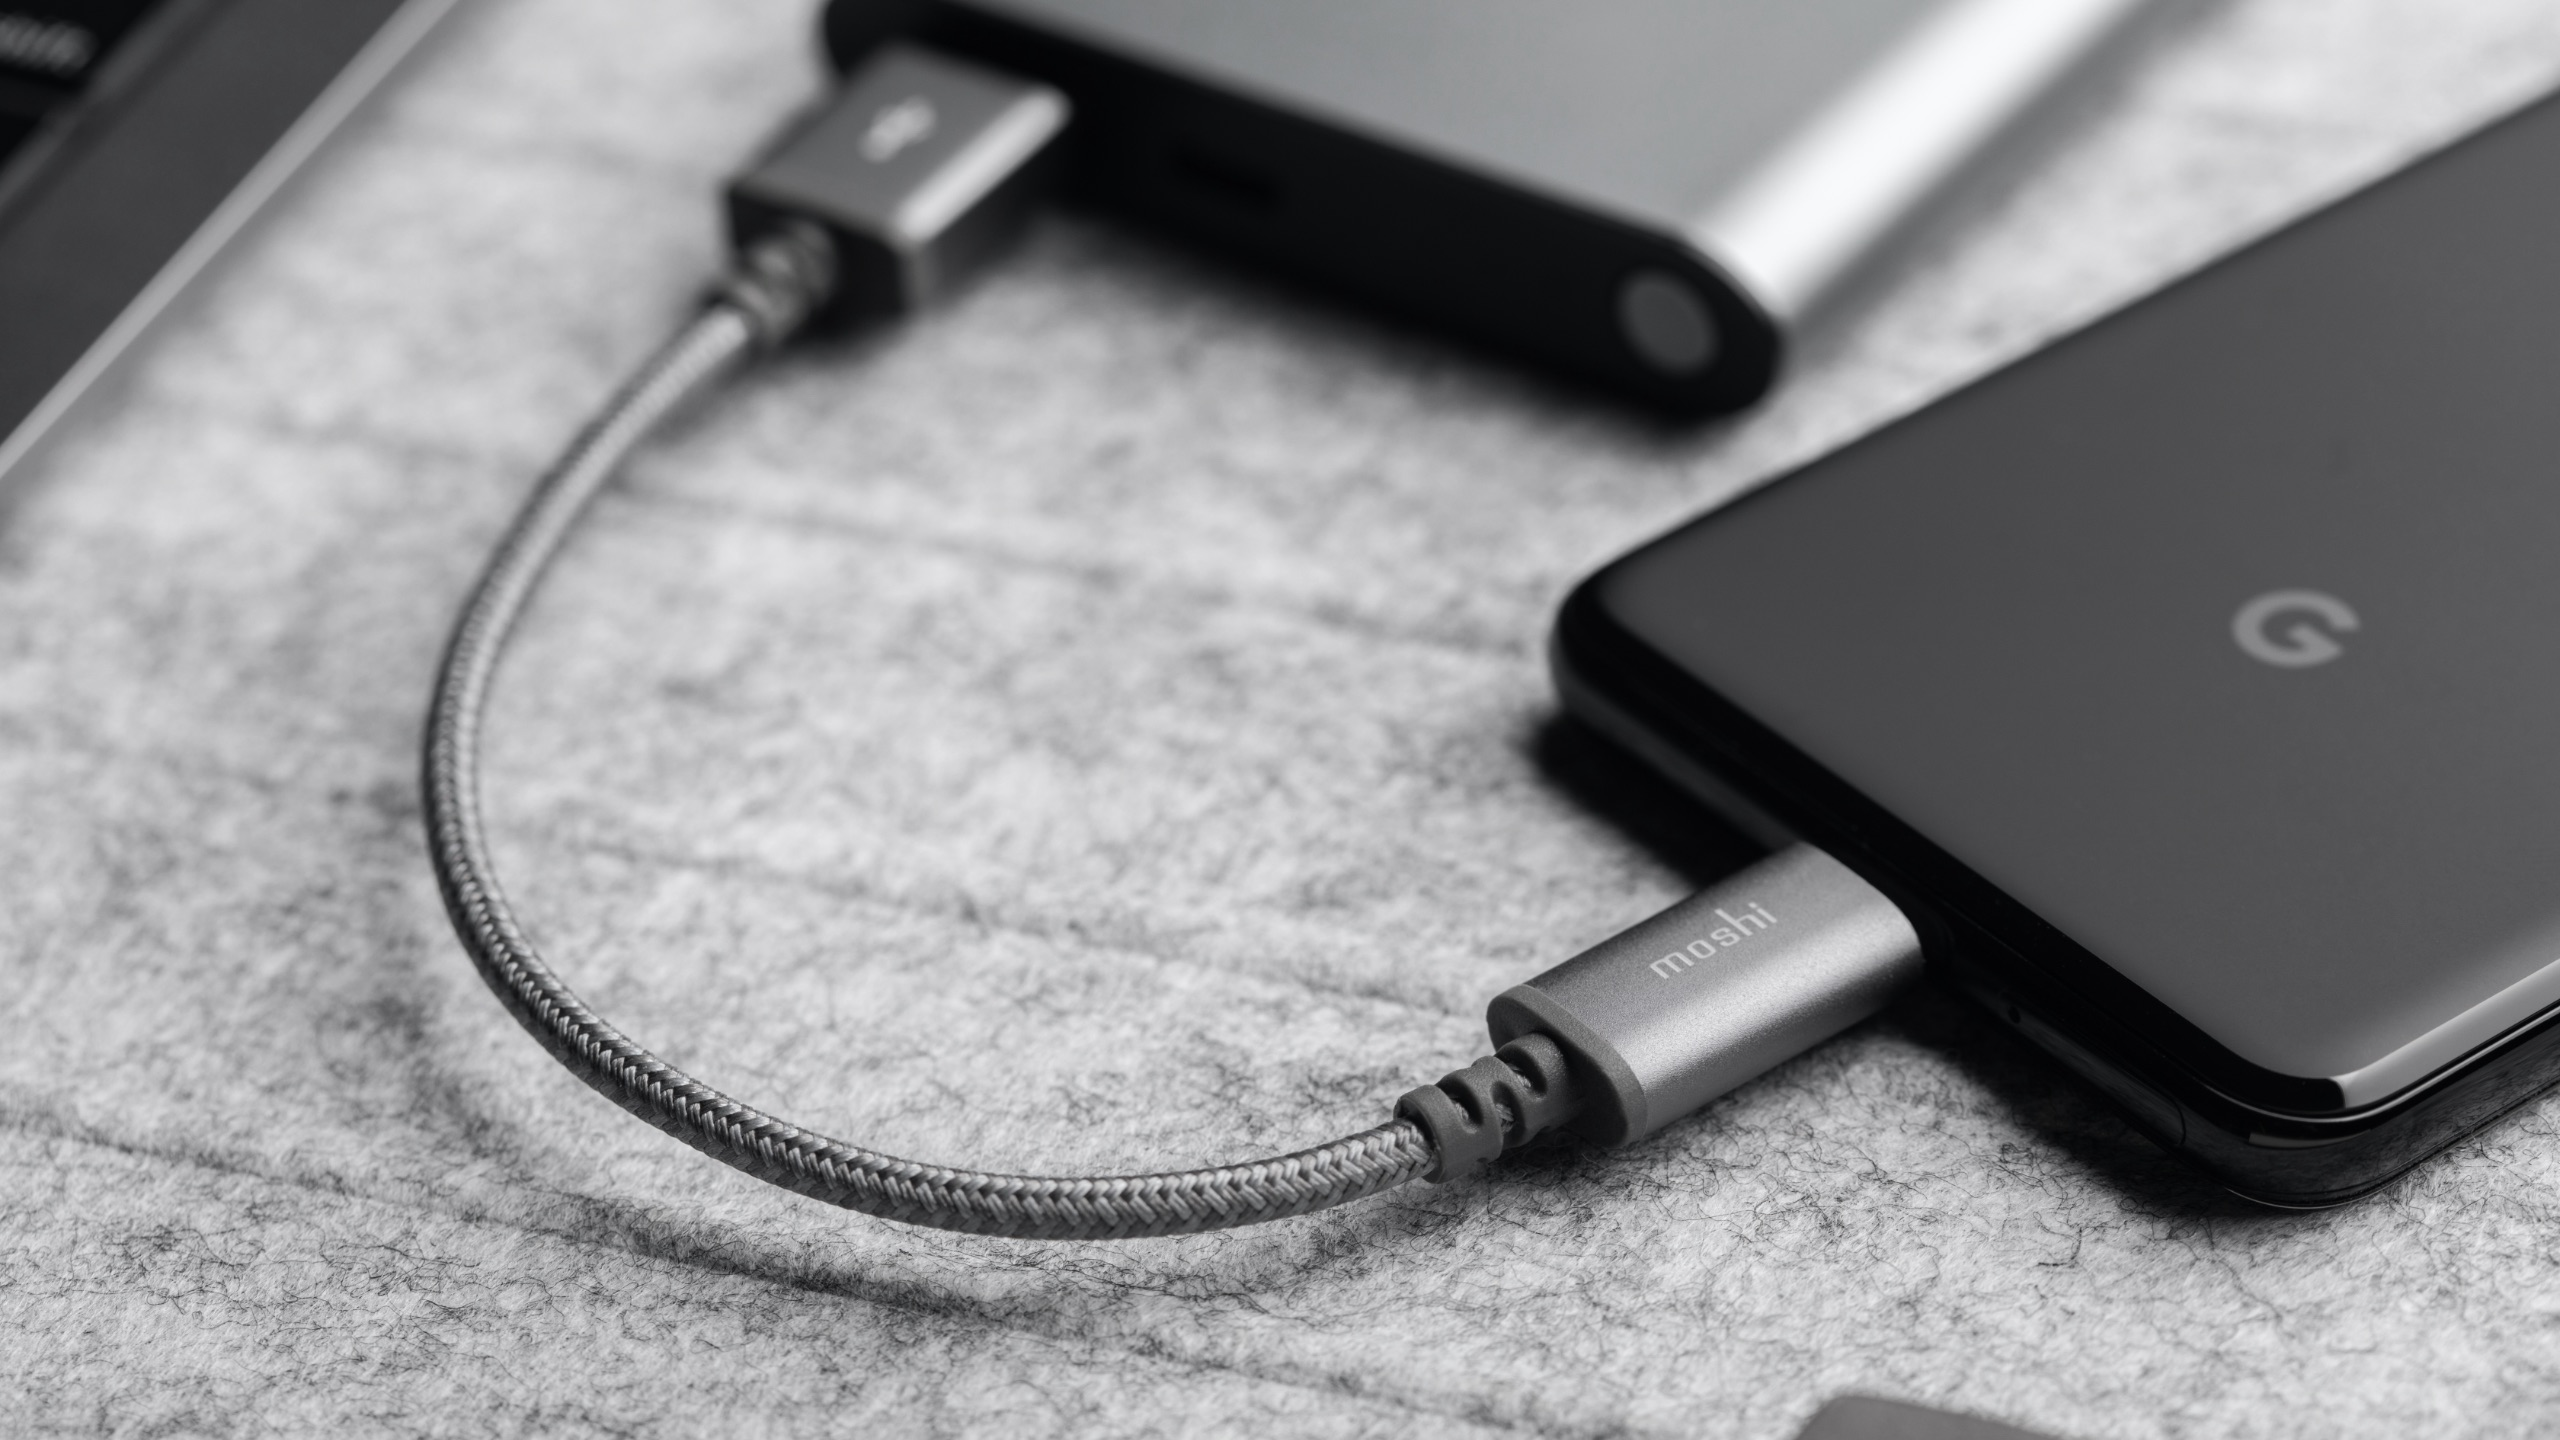 Integra™ USB-C to USB-A Charge Cable 0.8 ft (0.25 m)-image